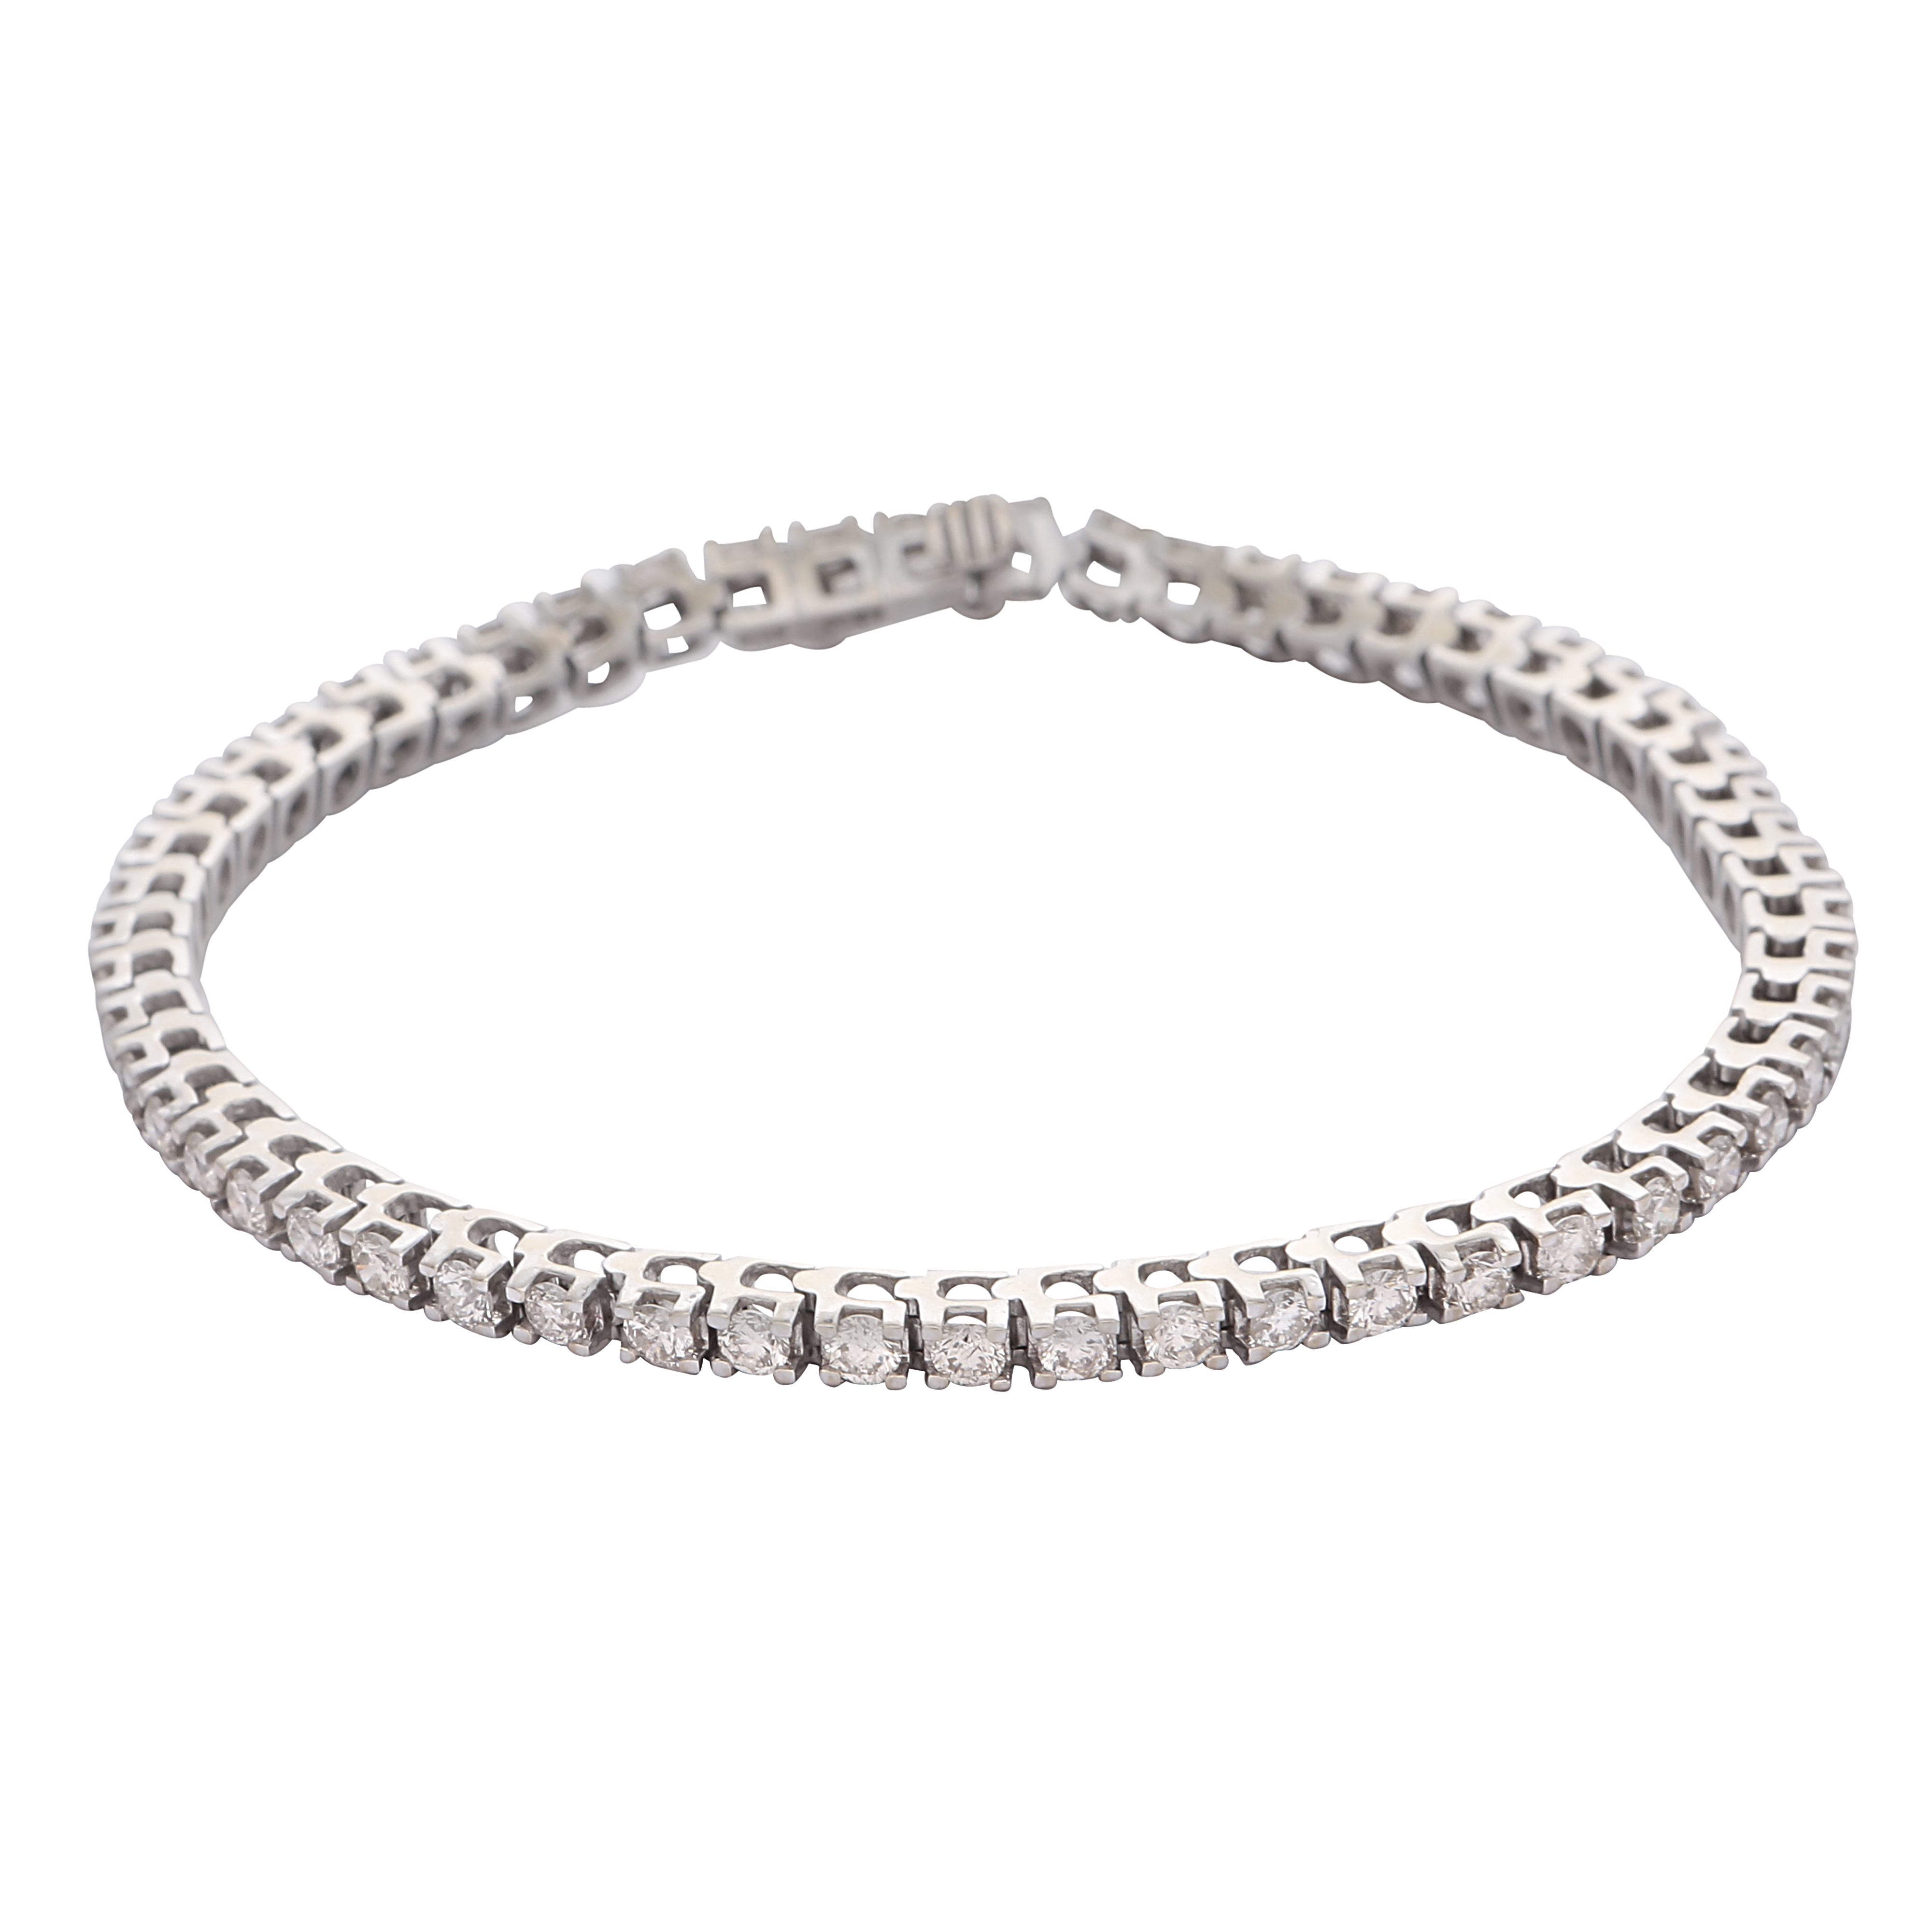 Los 210 - A diamond line / tennis bracelet in 18ct white gold, set with fifty five round brilliant cut